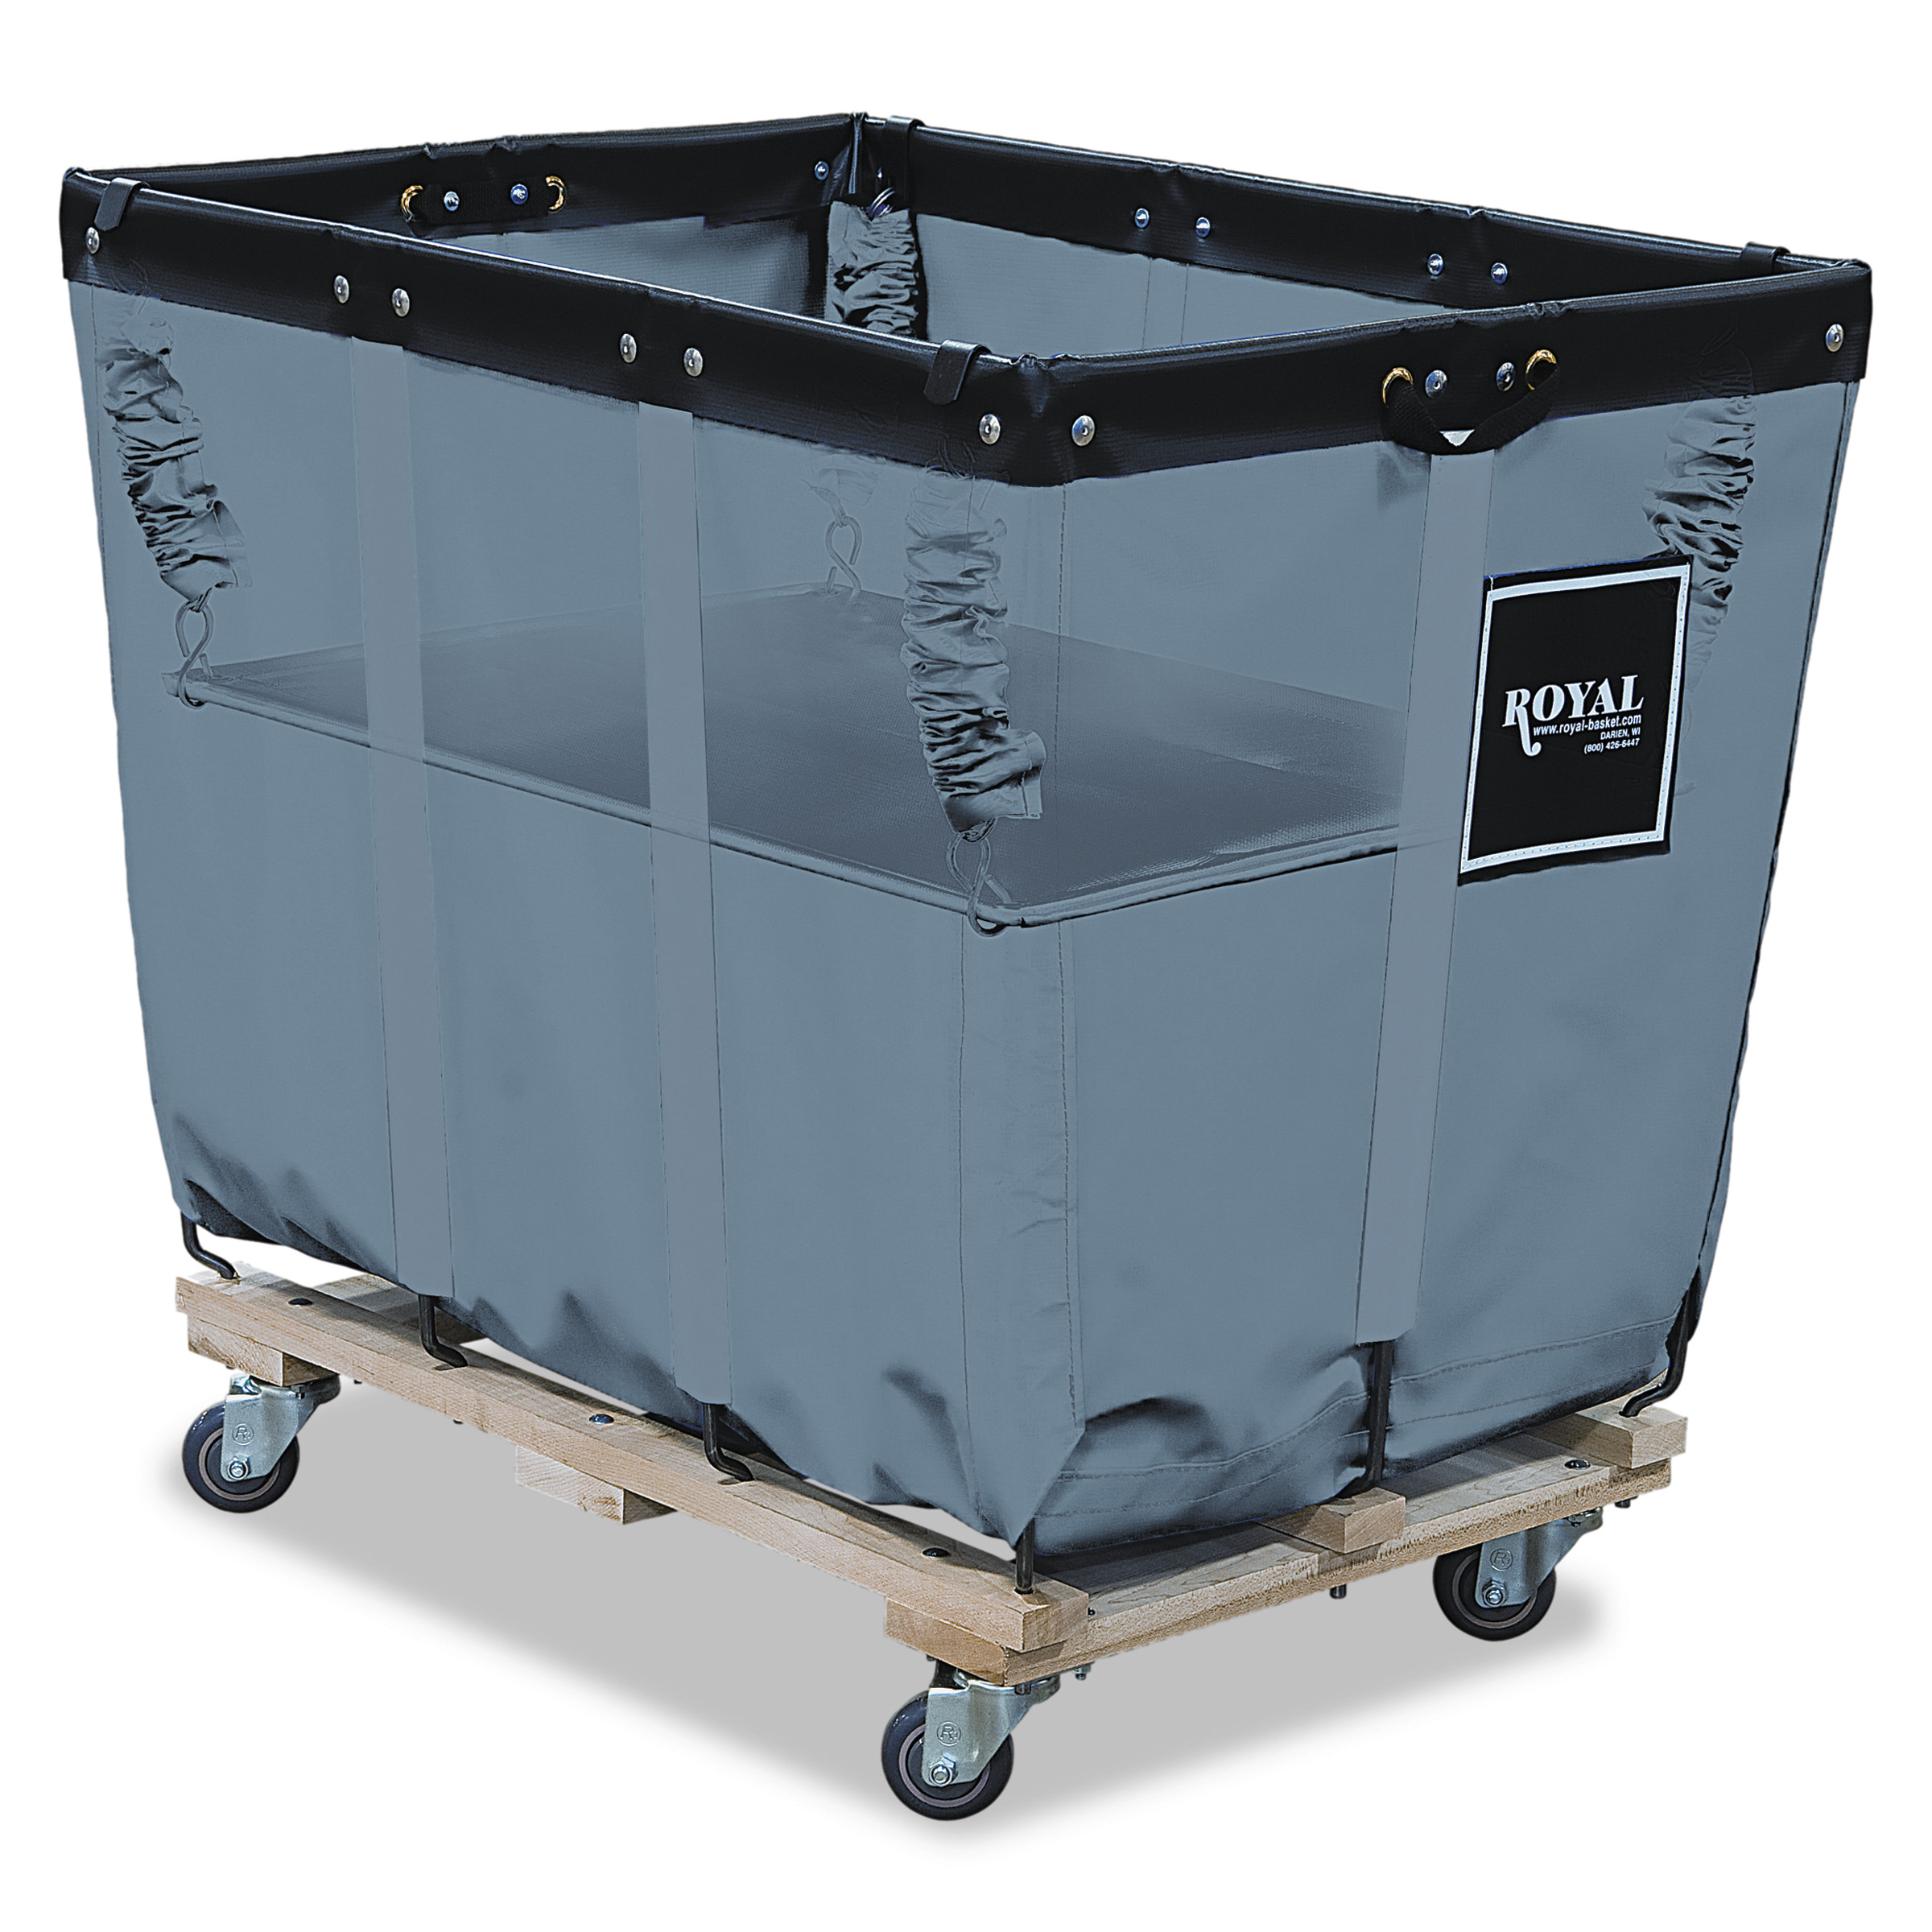 Royal Basket Trucks Spring Lift, 24 x 36, 16 Bushel, Vinyl/Steel, Gray